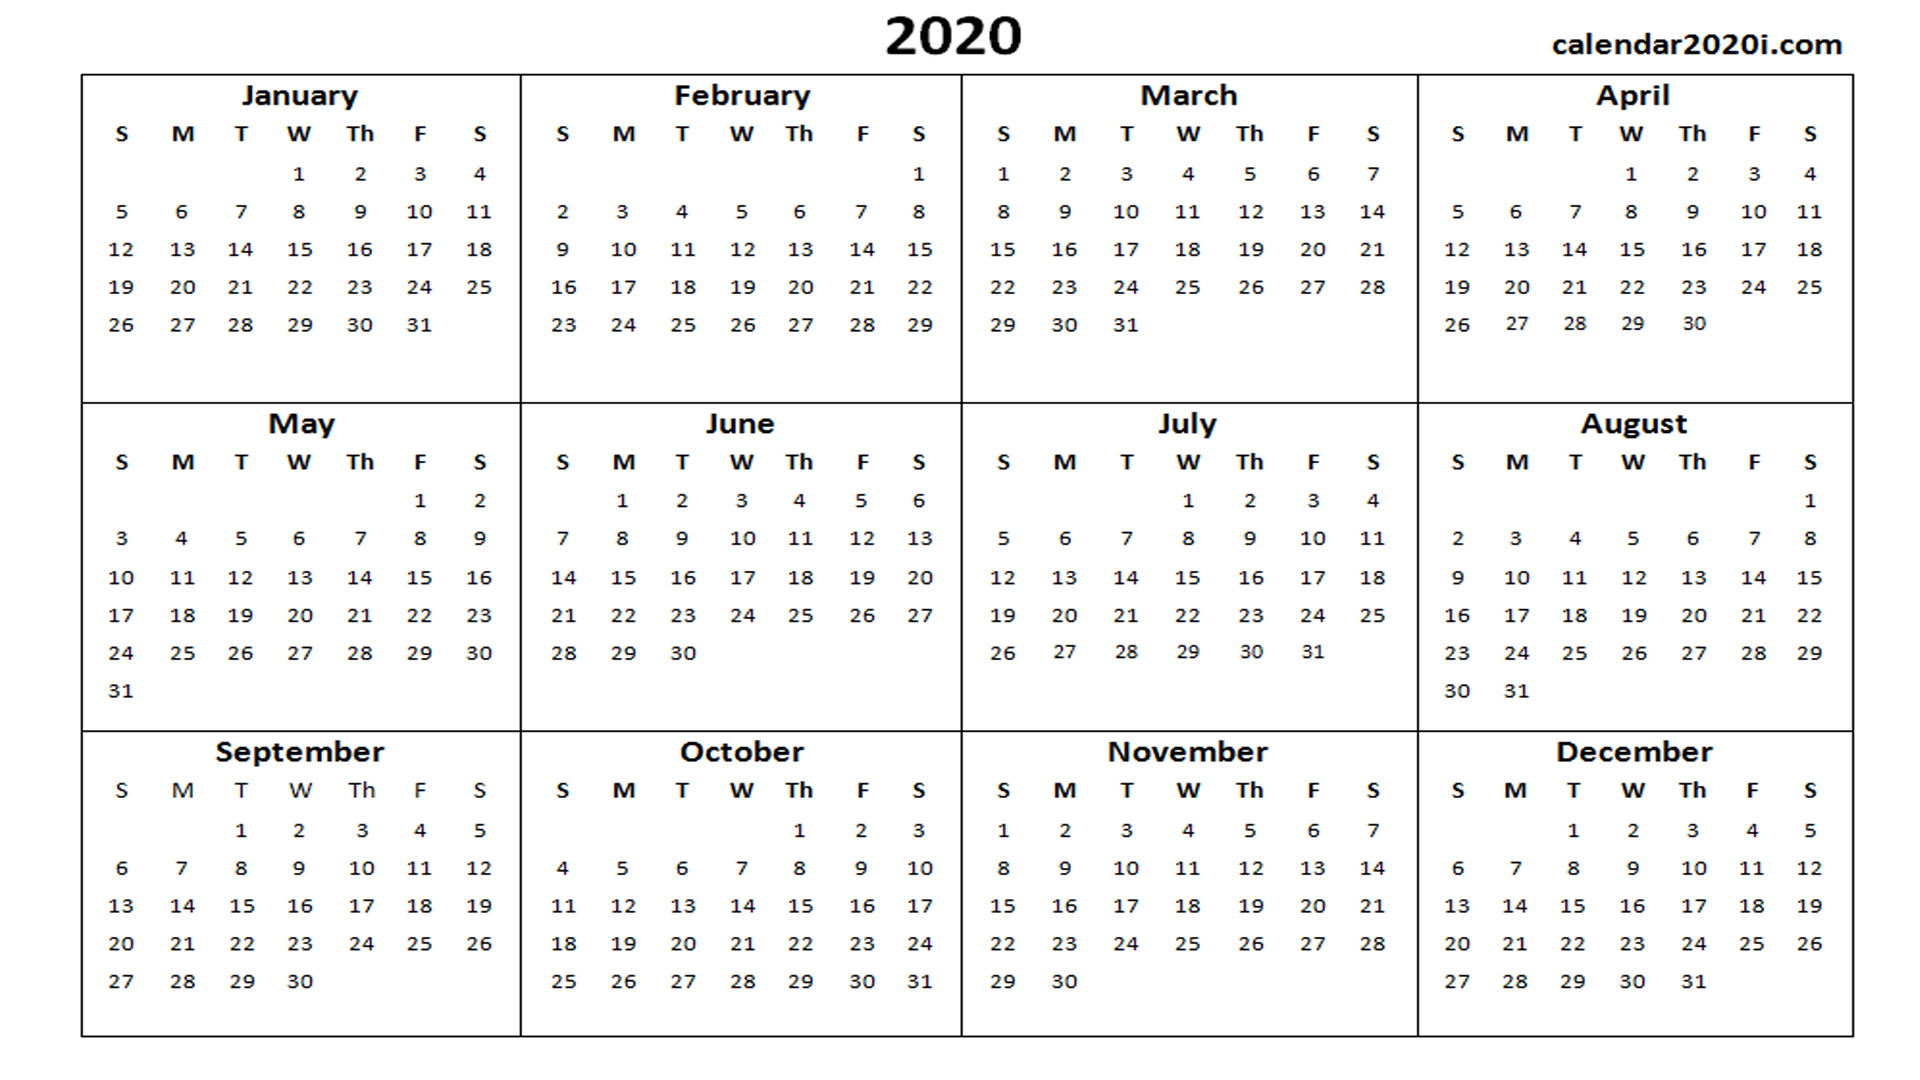 2020 Calendar Printable Template Holidays, Word, Excel Calender You Cann Edit With Holidays On It